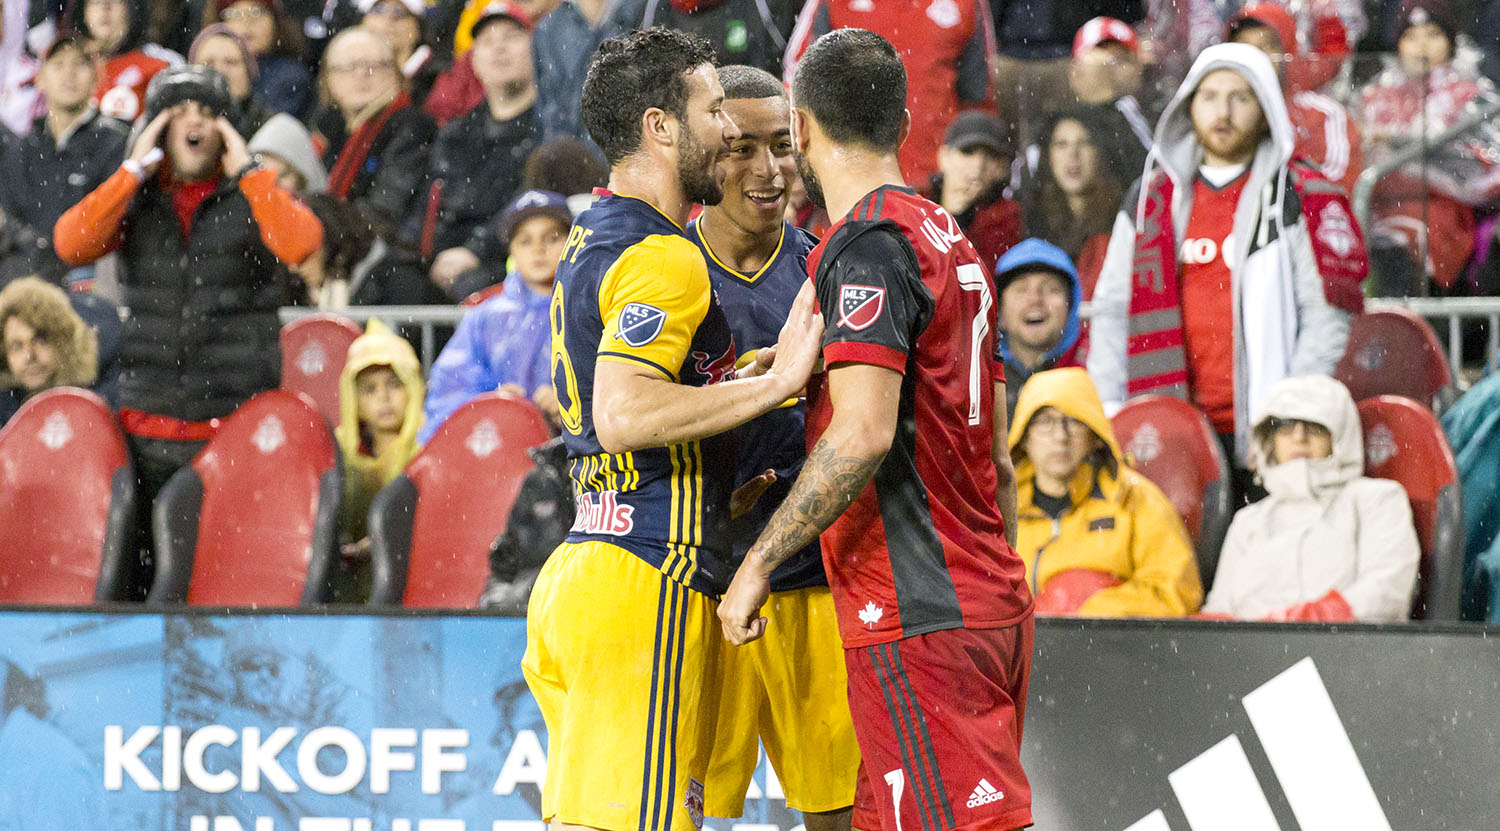 Two NYRB players argue with Víctor Vázquez Solsona during a playoff match in 2017 at BMO Field. Image by Dennis Marciniak of denMAR Media.